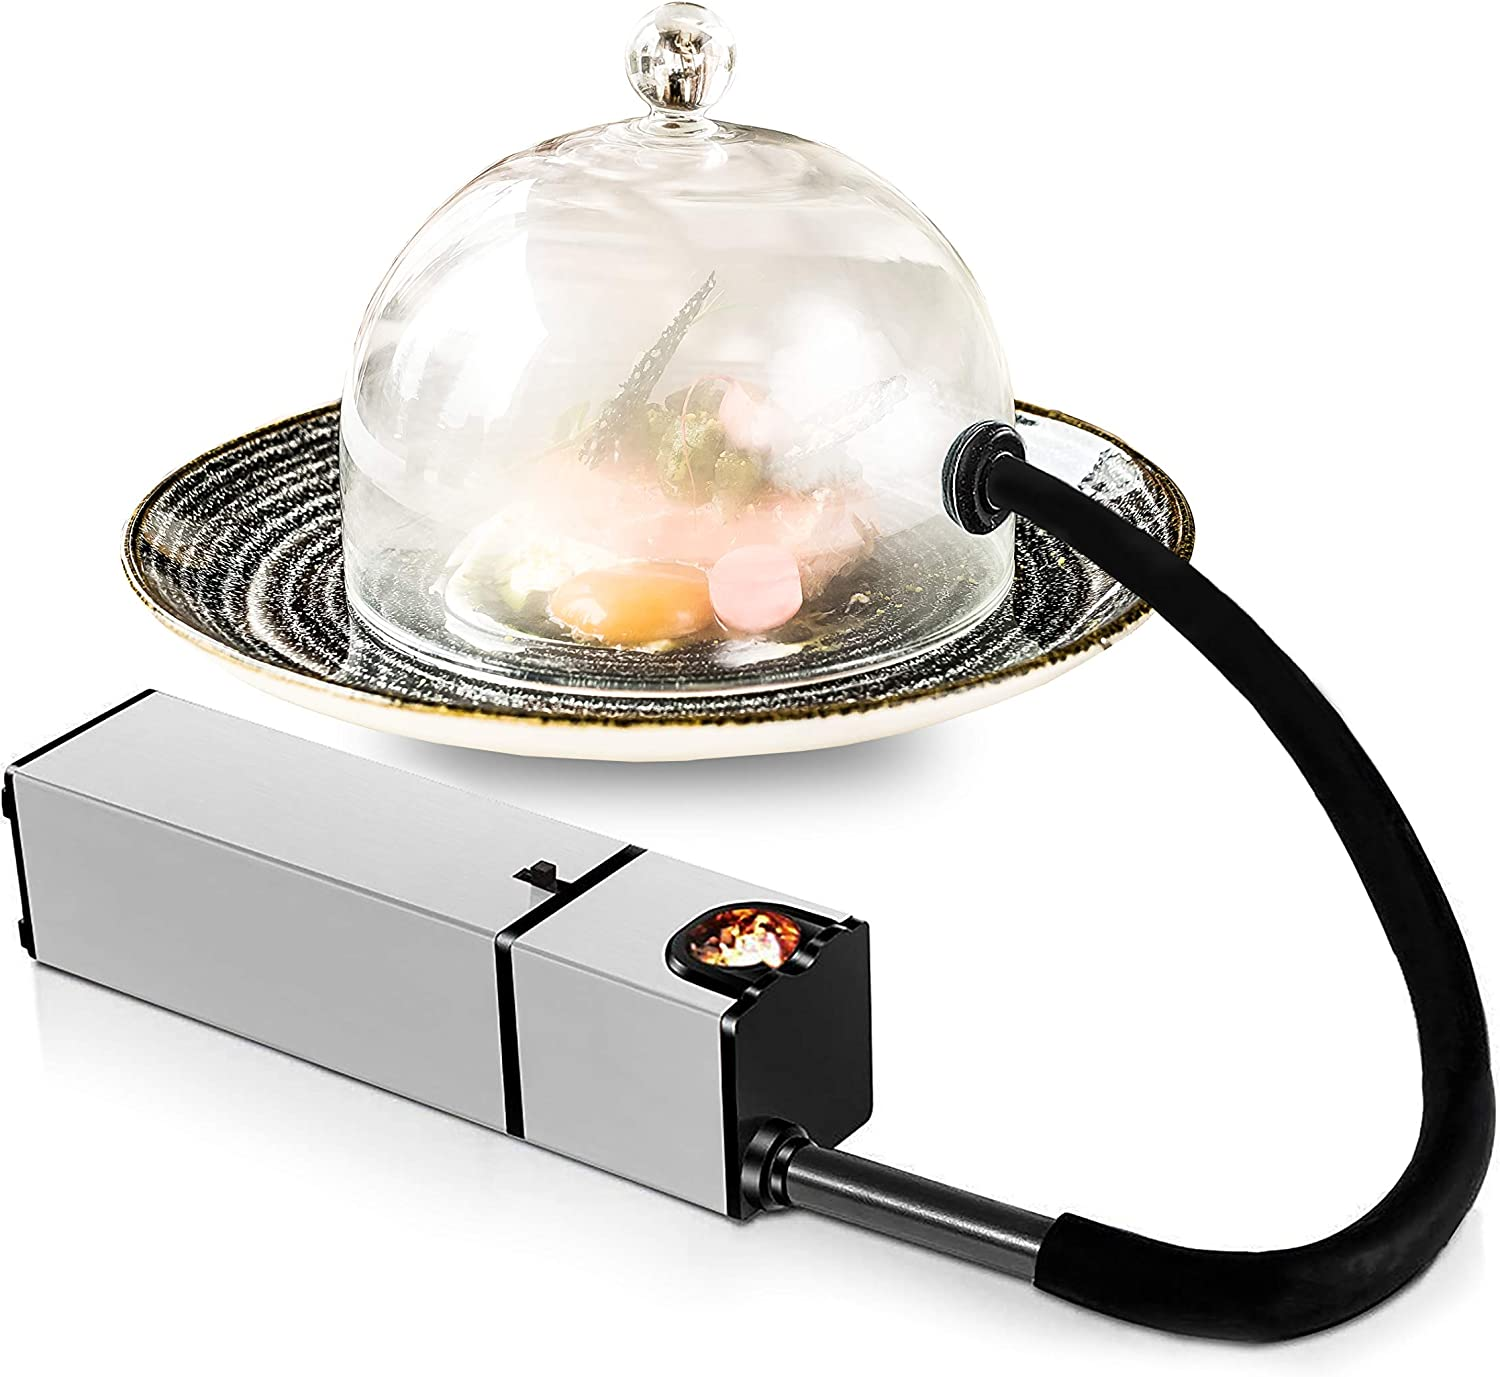 Chefhut Portable Smoke Infuser Handheld Cold Smoking Gun Indoor Mini Food Smoker for Meat, Cocktail, Drinks, BBQ